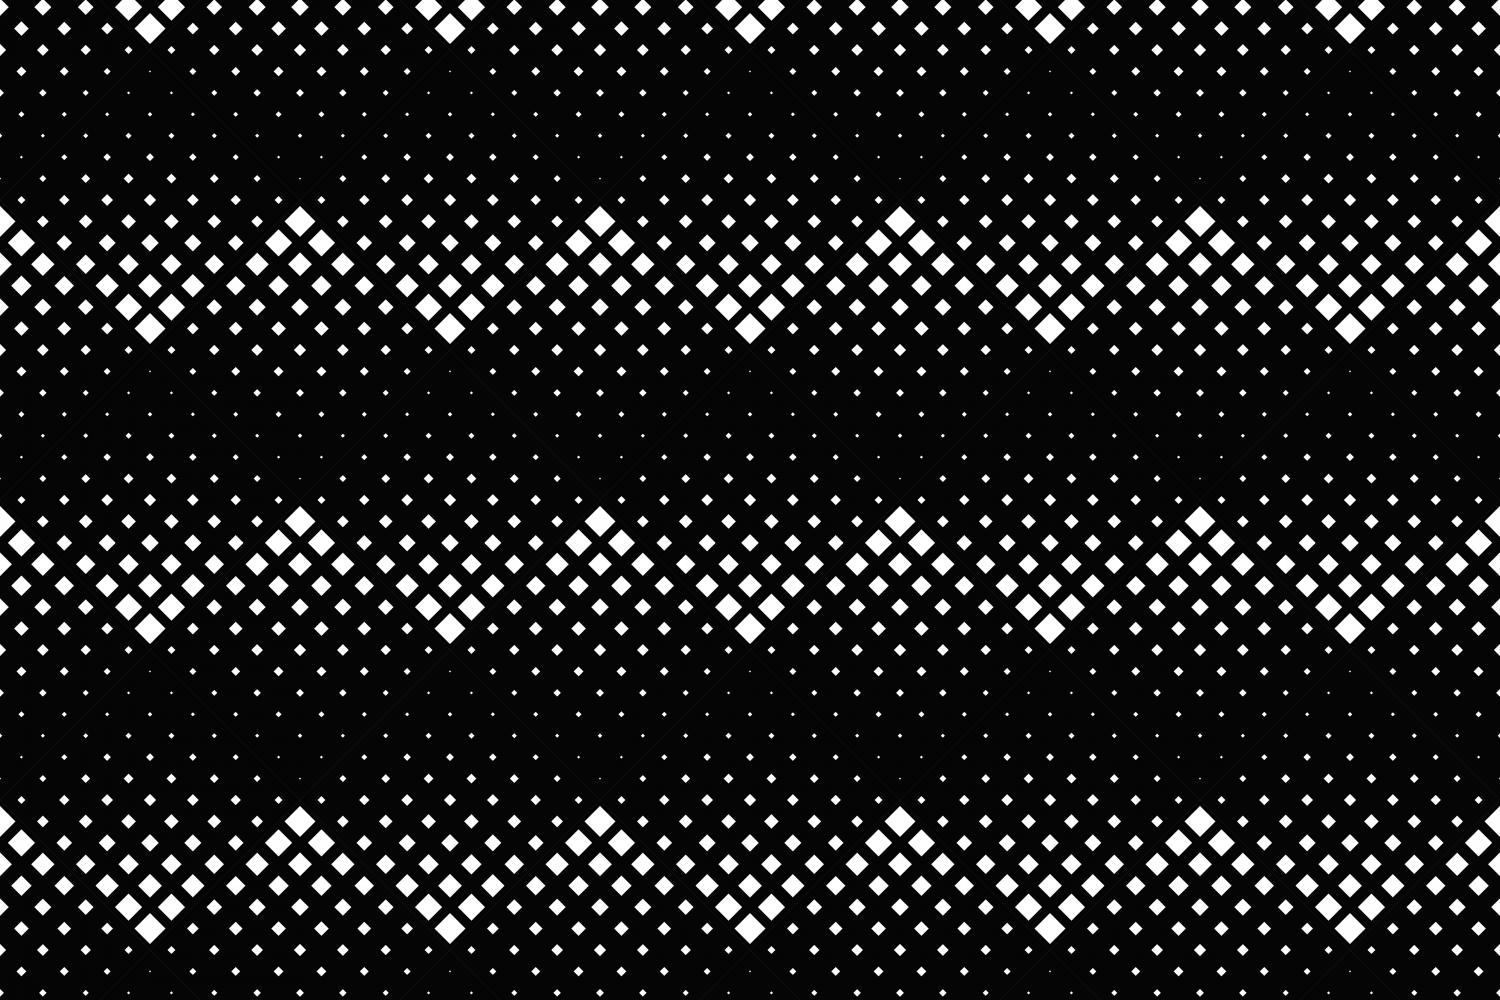 24 Seamless Square Patterns example image 9